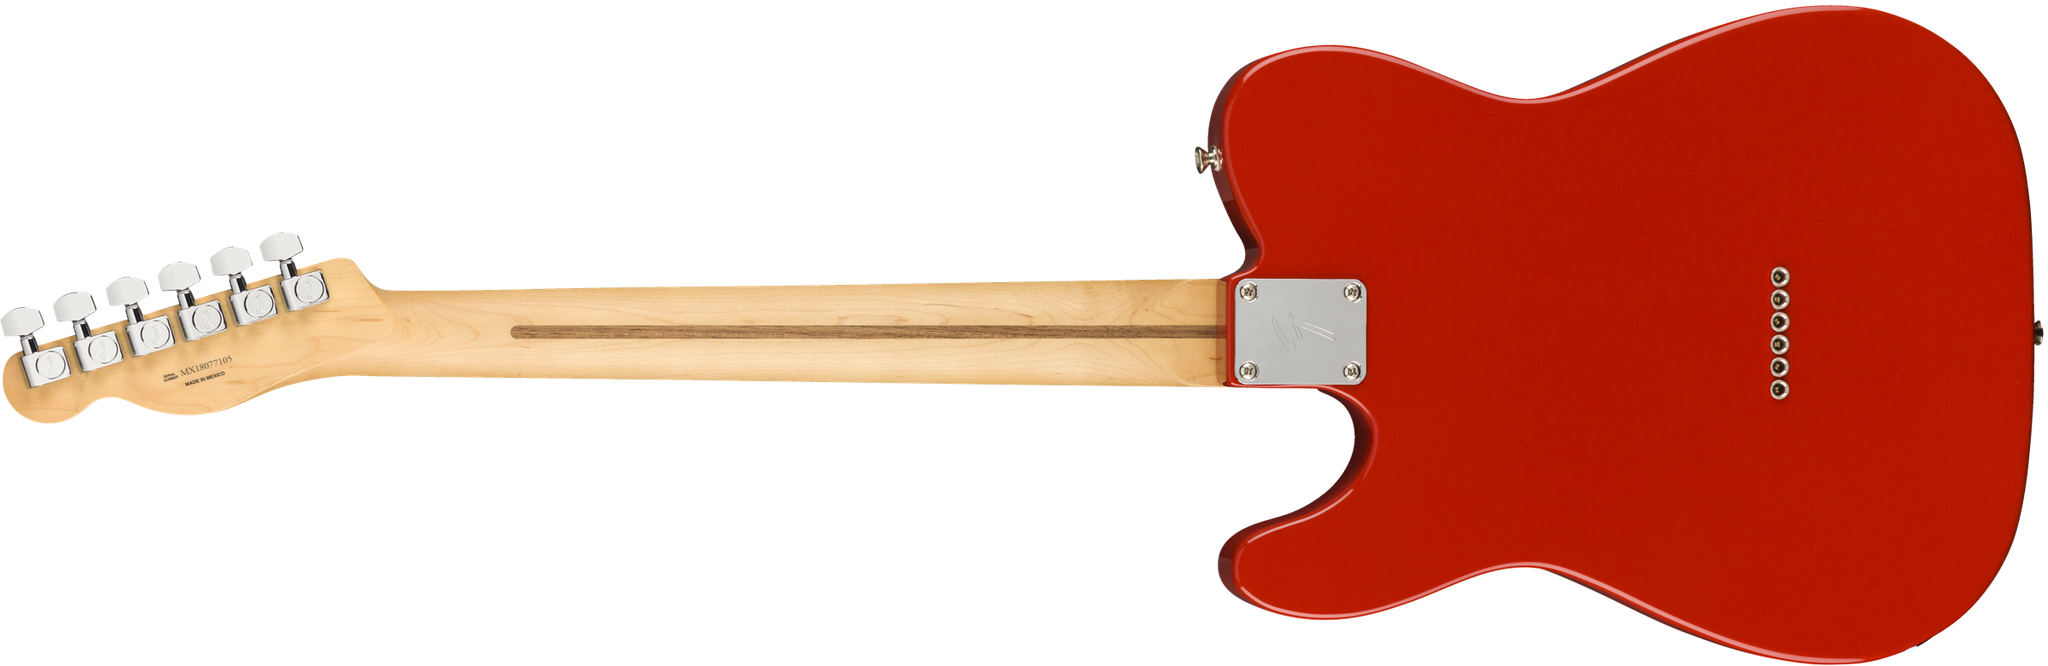 Fender Player Telecaster Sonic Red